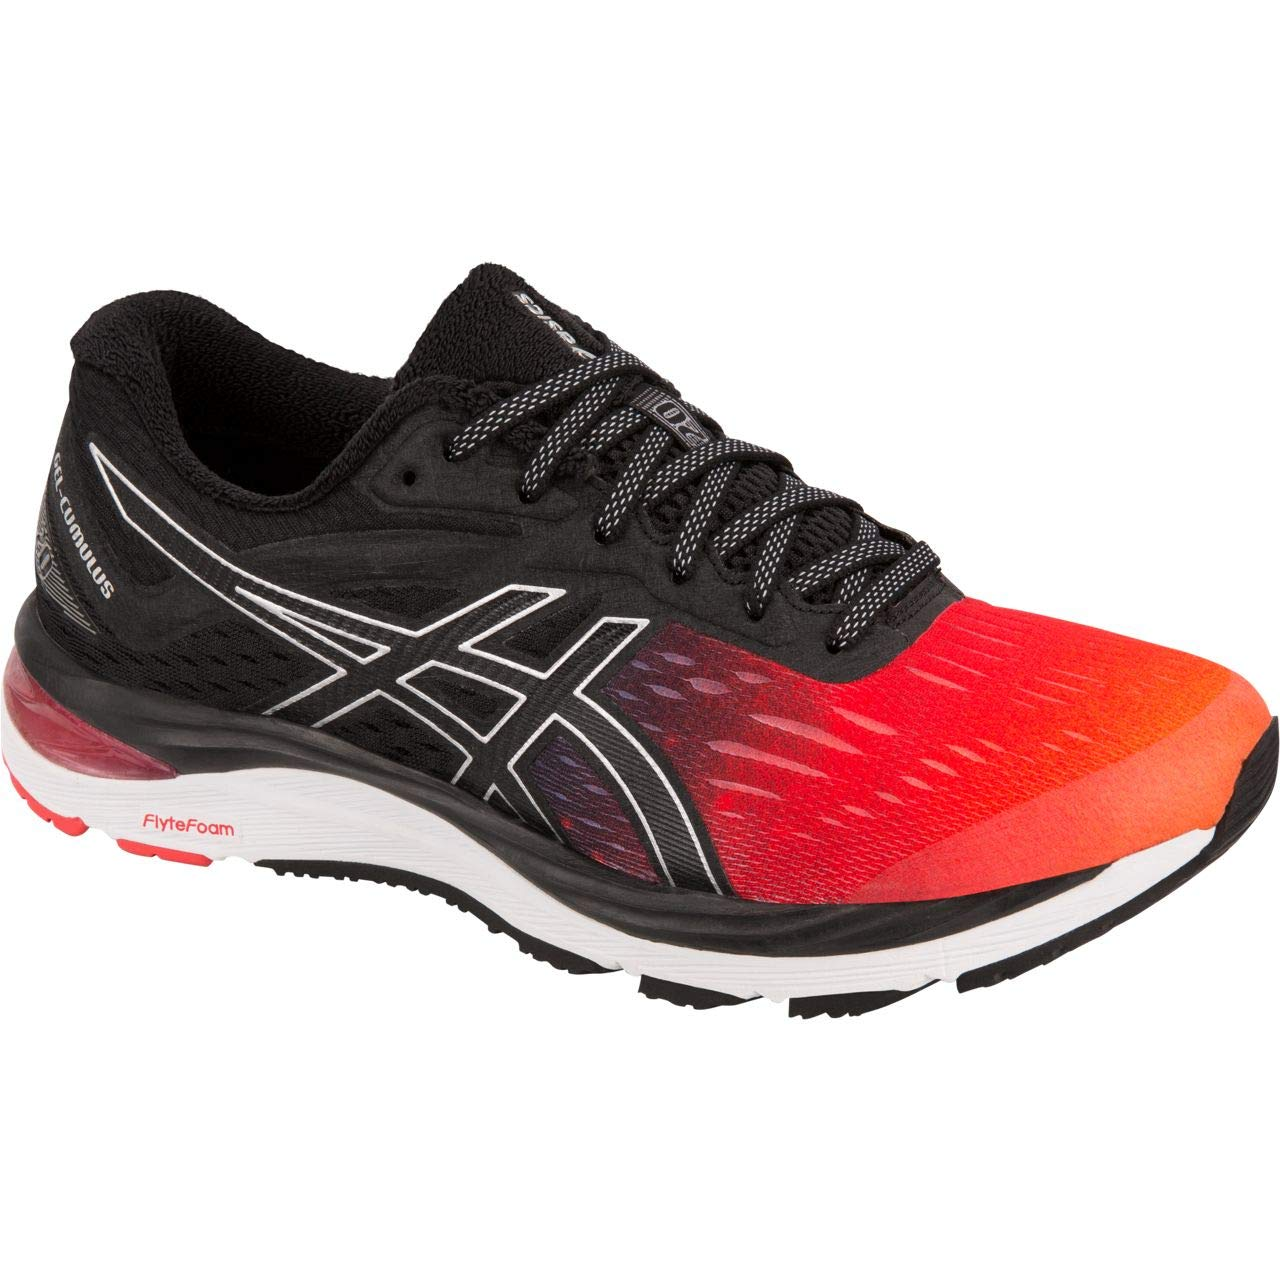 ASICS - Gel-Cumulus® 20 Sp Shoes für Herren Burgundy/Black